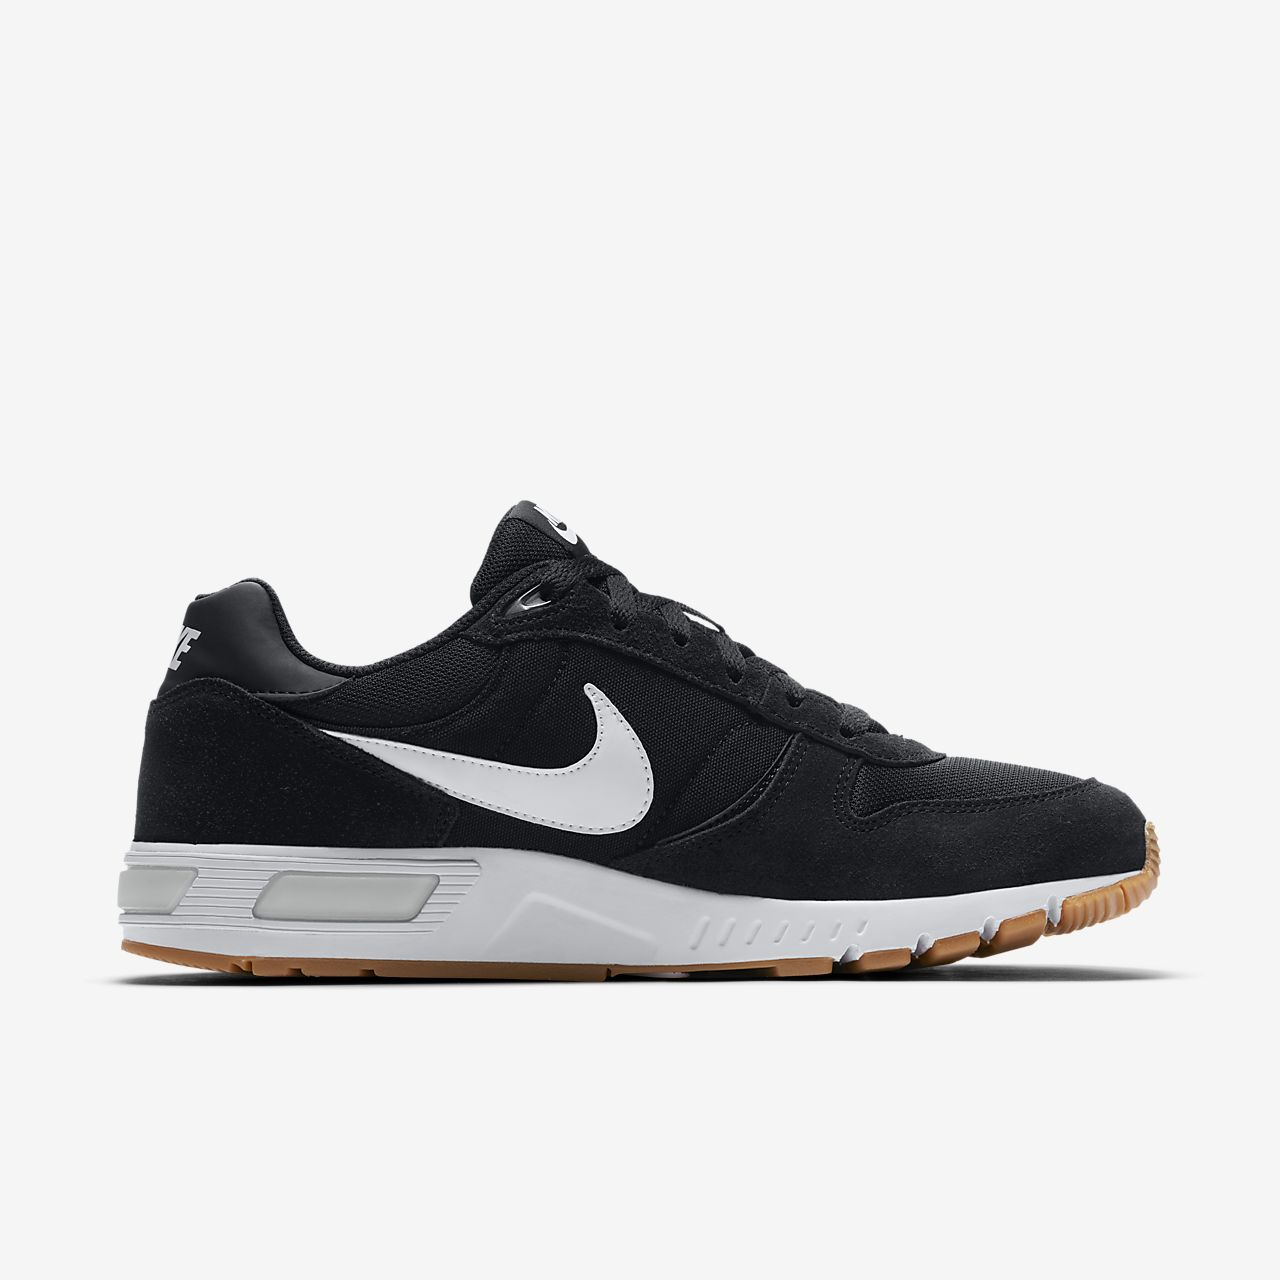 competitive price 32128 8b2c9 Chaussure pour Homme. Nike Nightgazer